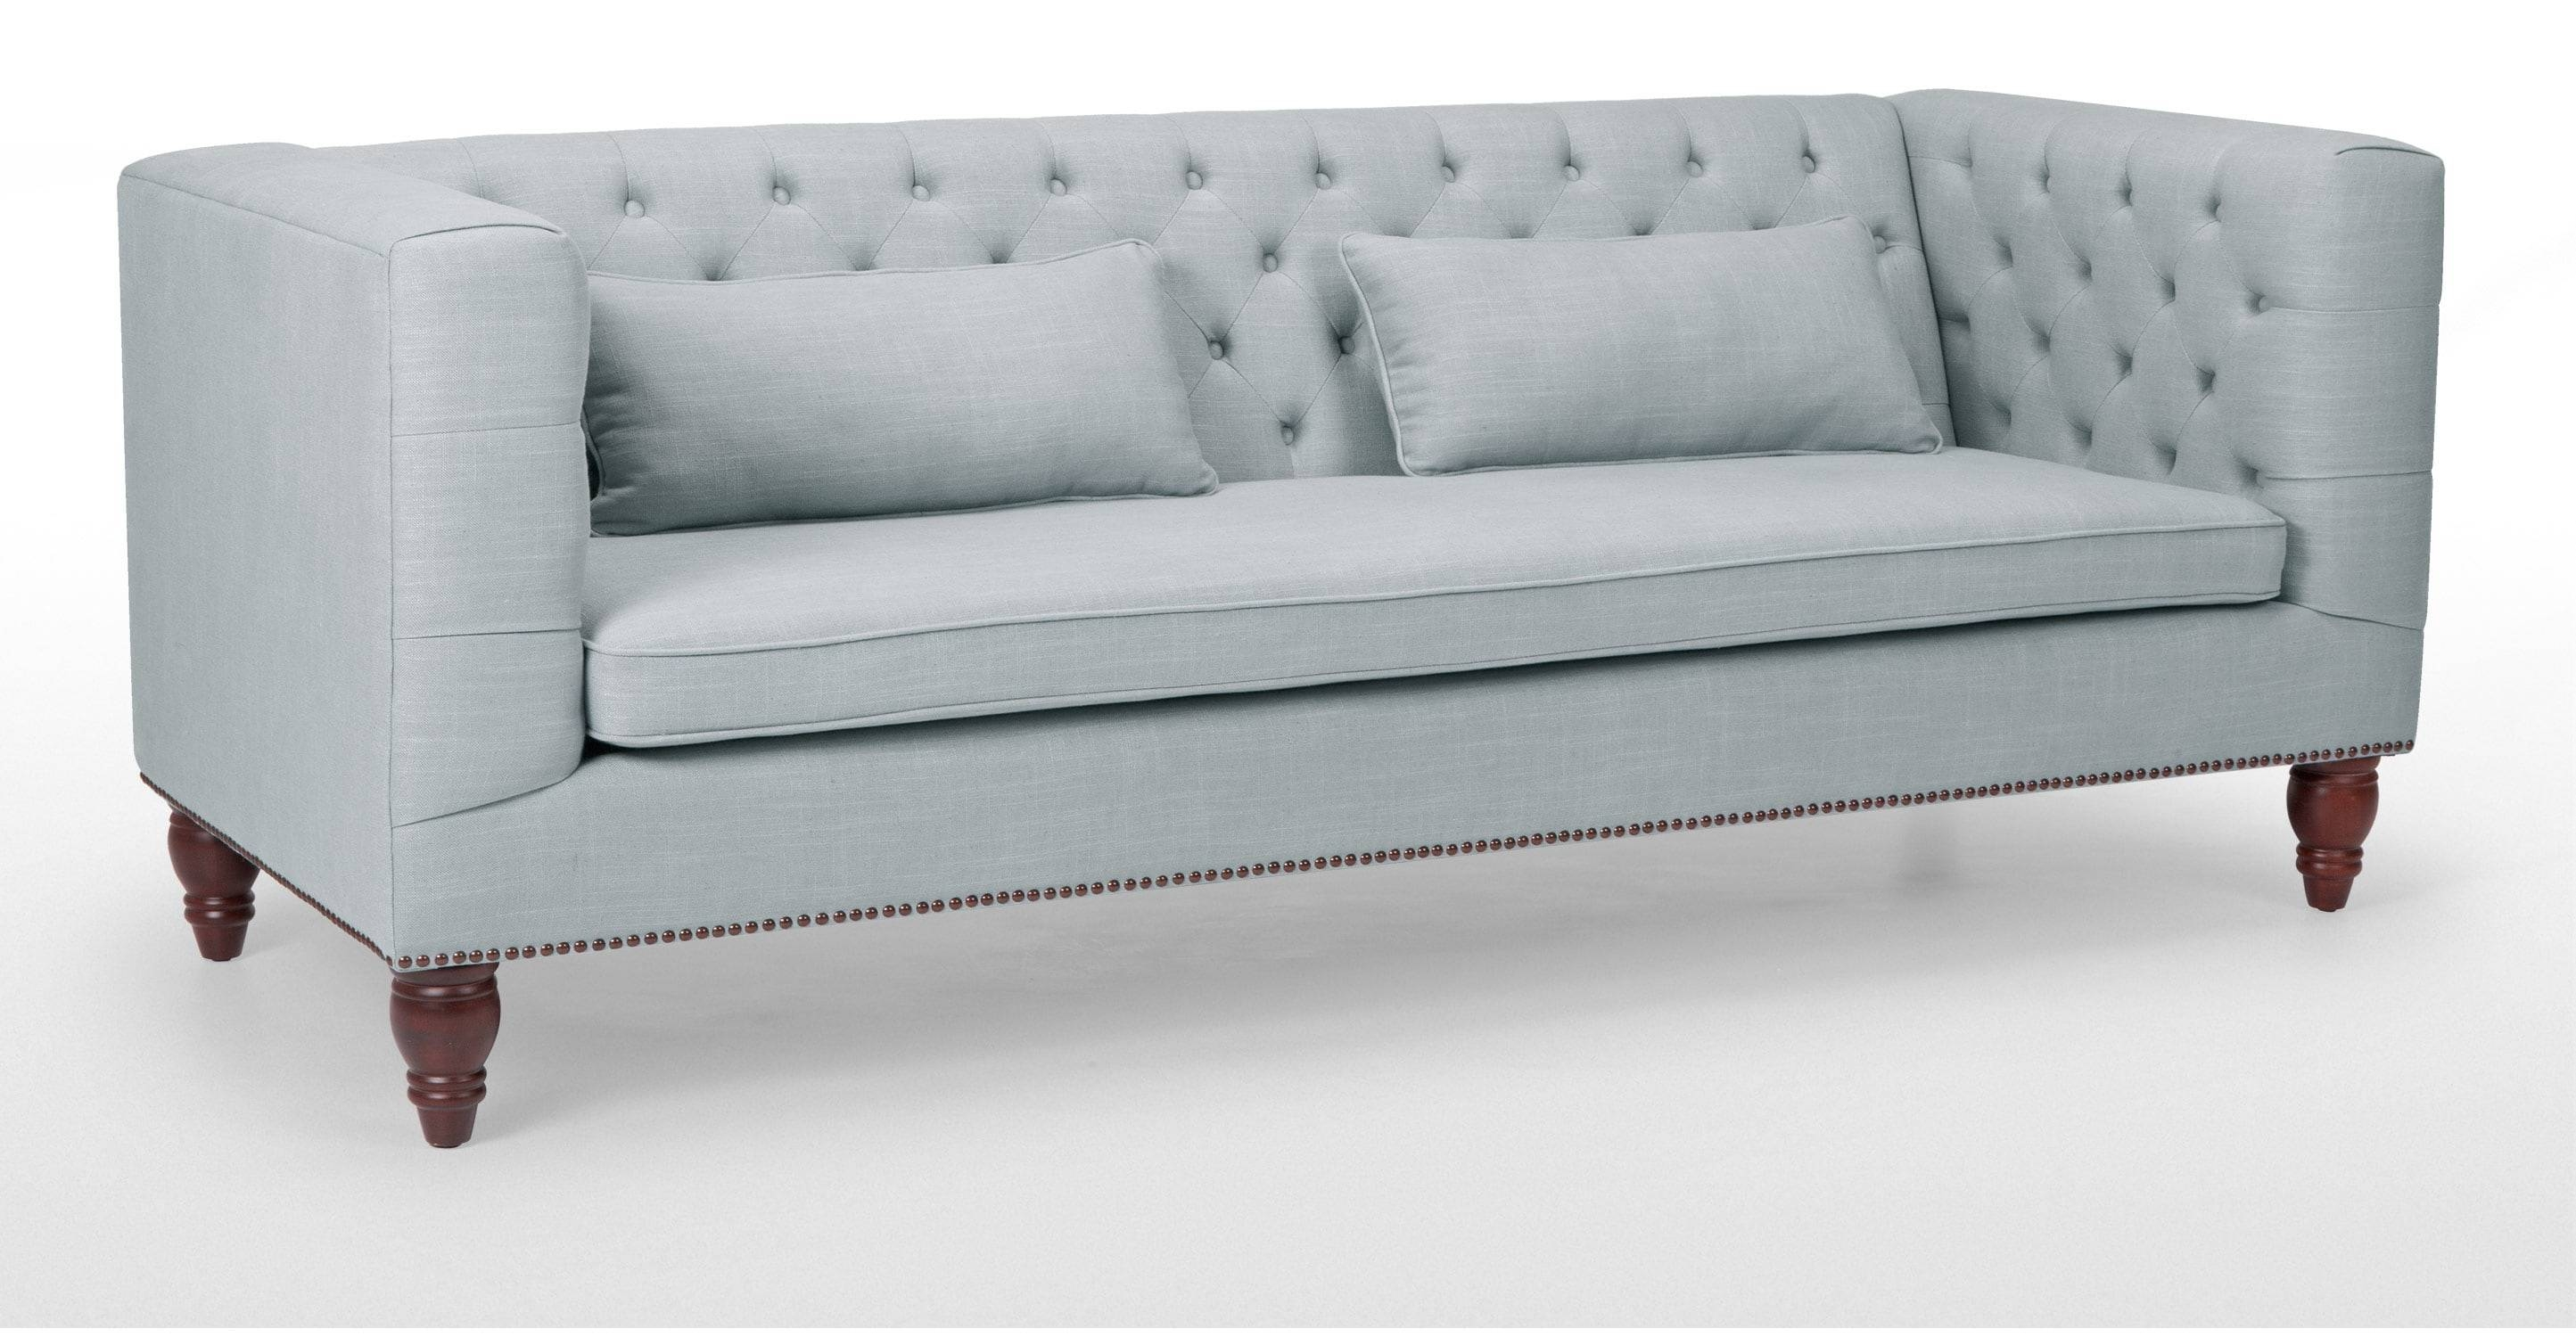 Flynn 3 Seater Sofa In Persian Grey | Made intended for Three Seater Sofas (Image 17 of 30)